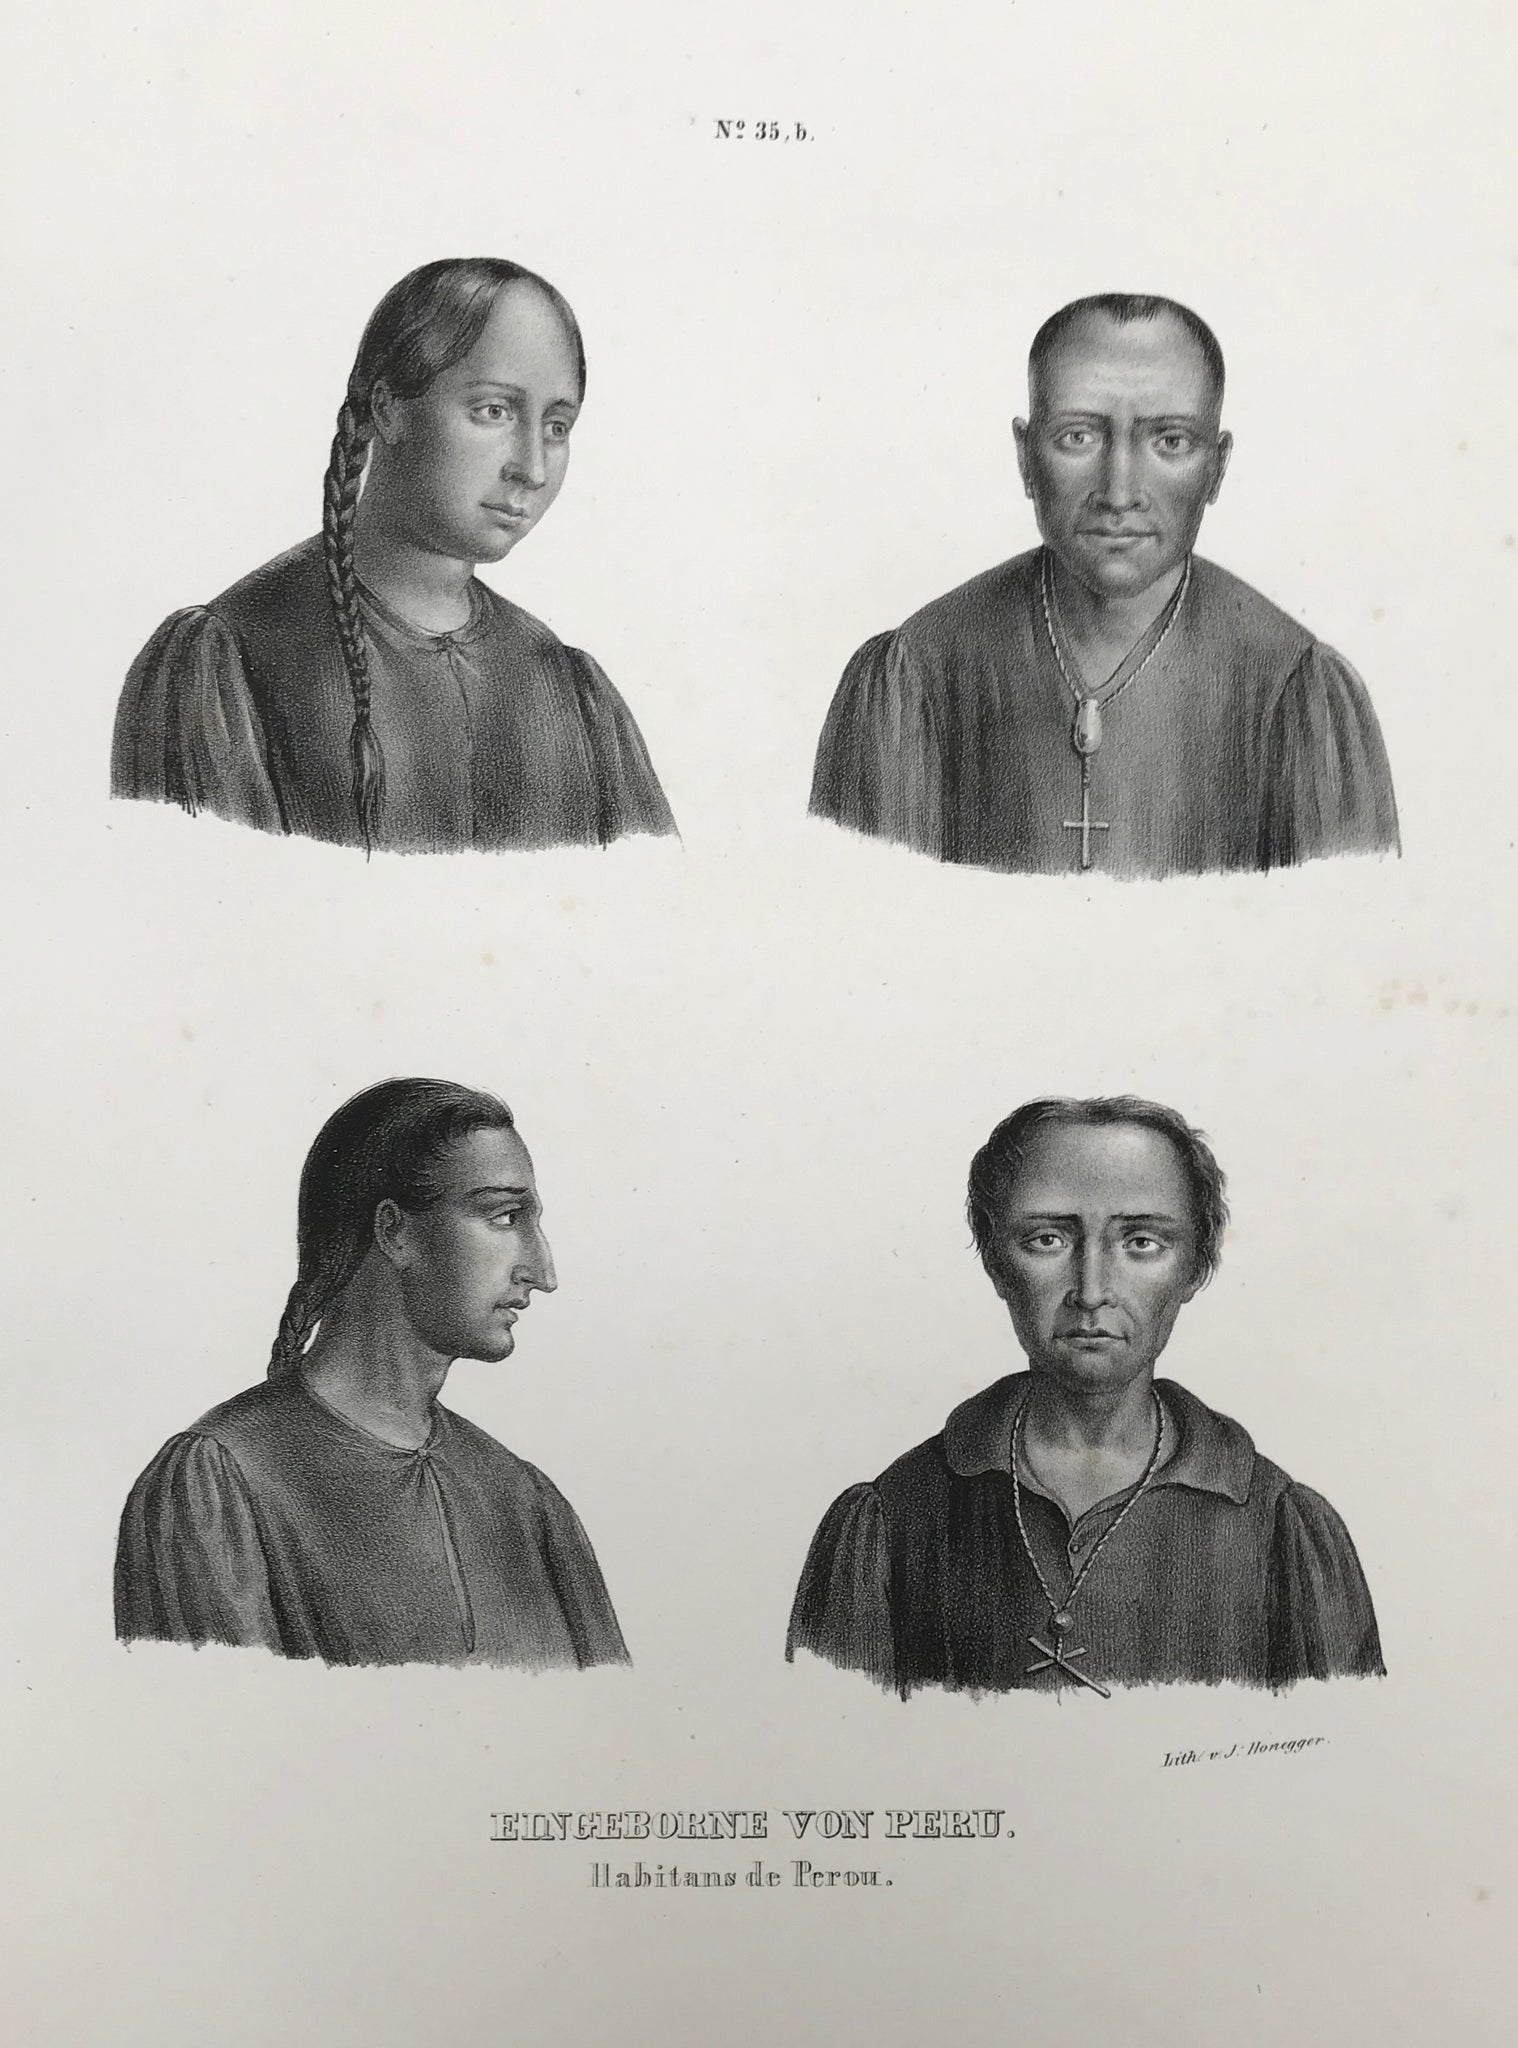 """Eingeborene von Peru"". (Natives of Peru). Habitans de Perou  Lithograph by J. Honegger from ""Naturgeschichte und Abblidung des Menschen..."" by Heinrich Rudolf Schinz. Zurich, 1845. (Native people of the world)."